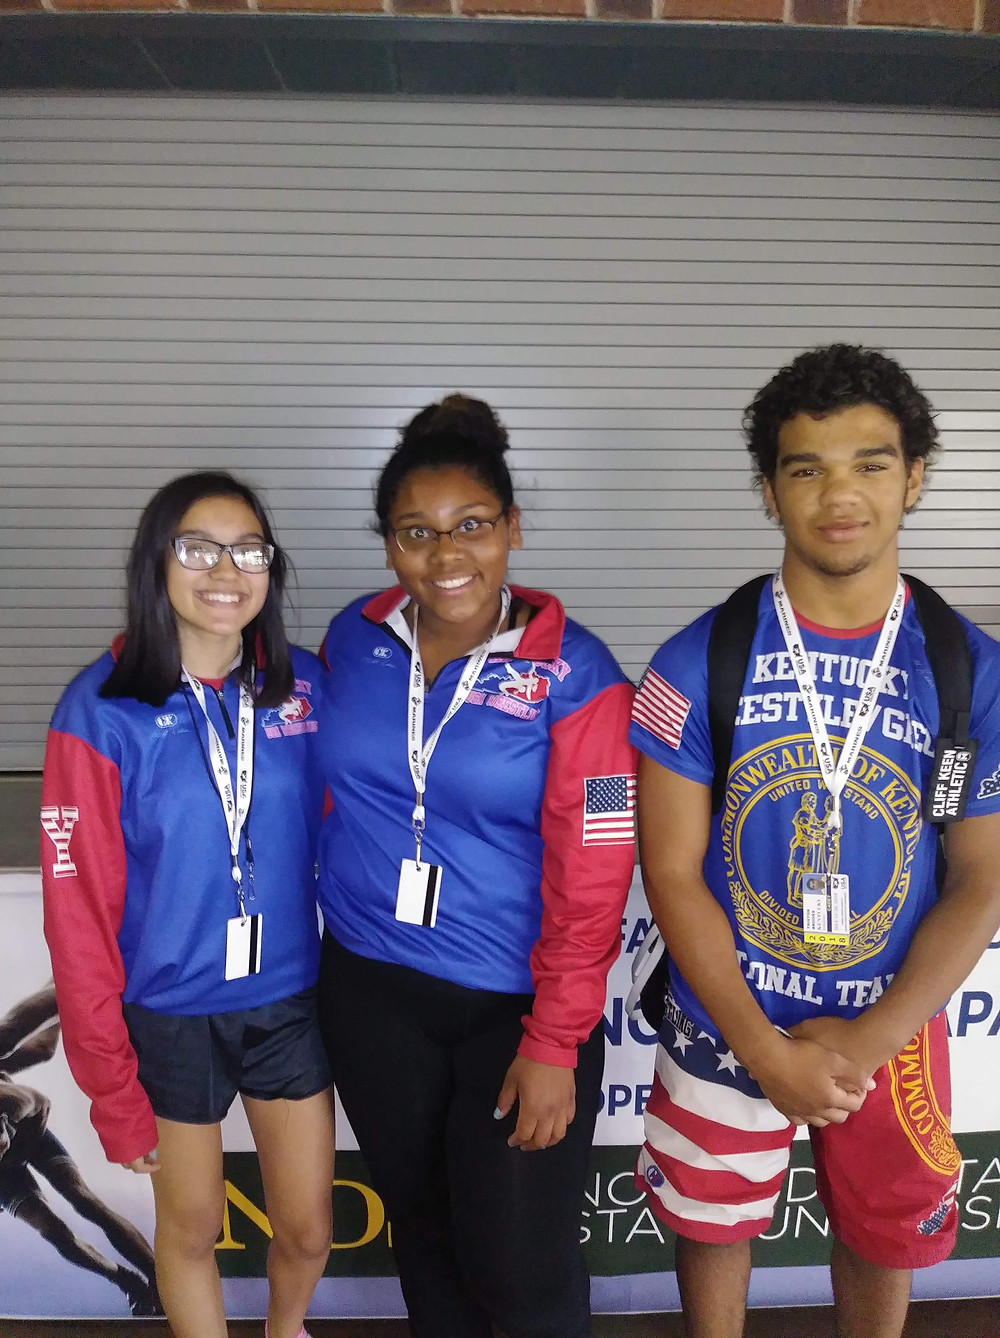 THREE WCHS WRESTLERS competed at the Fargo Dome in the US Marines and Cadet National Championship. From left, Ashley Courtney, Mequioa Bernabe and Triston Brooks. (Photo submitted)